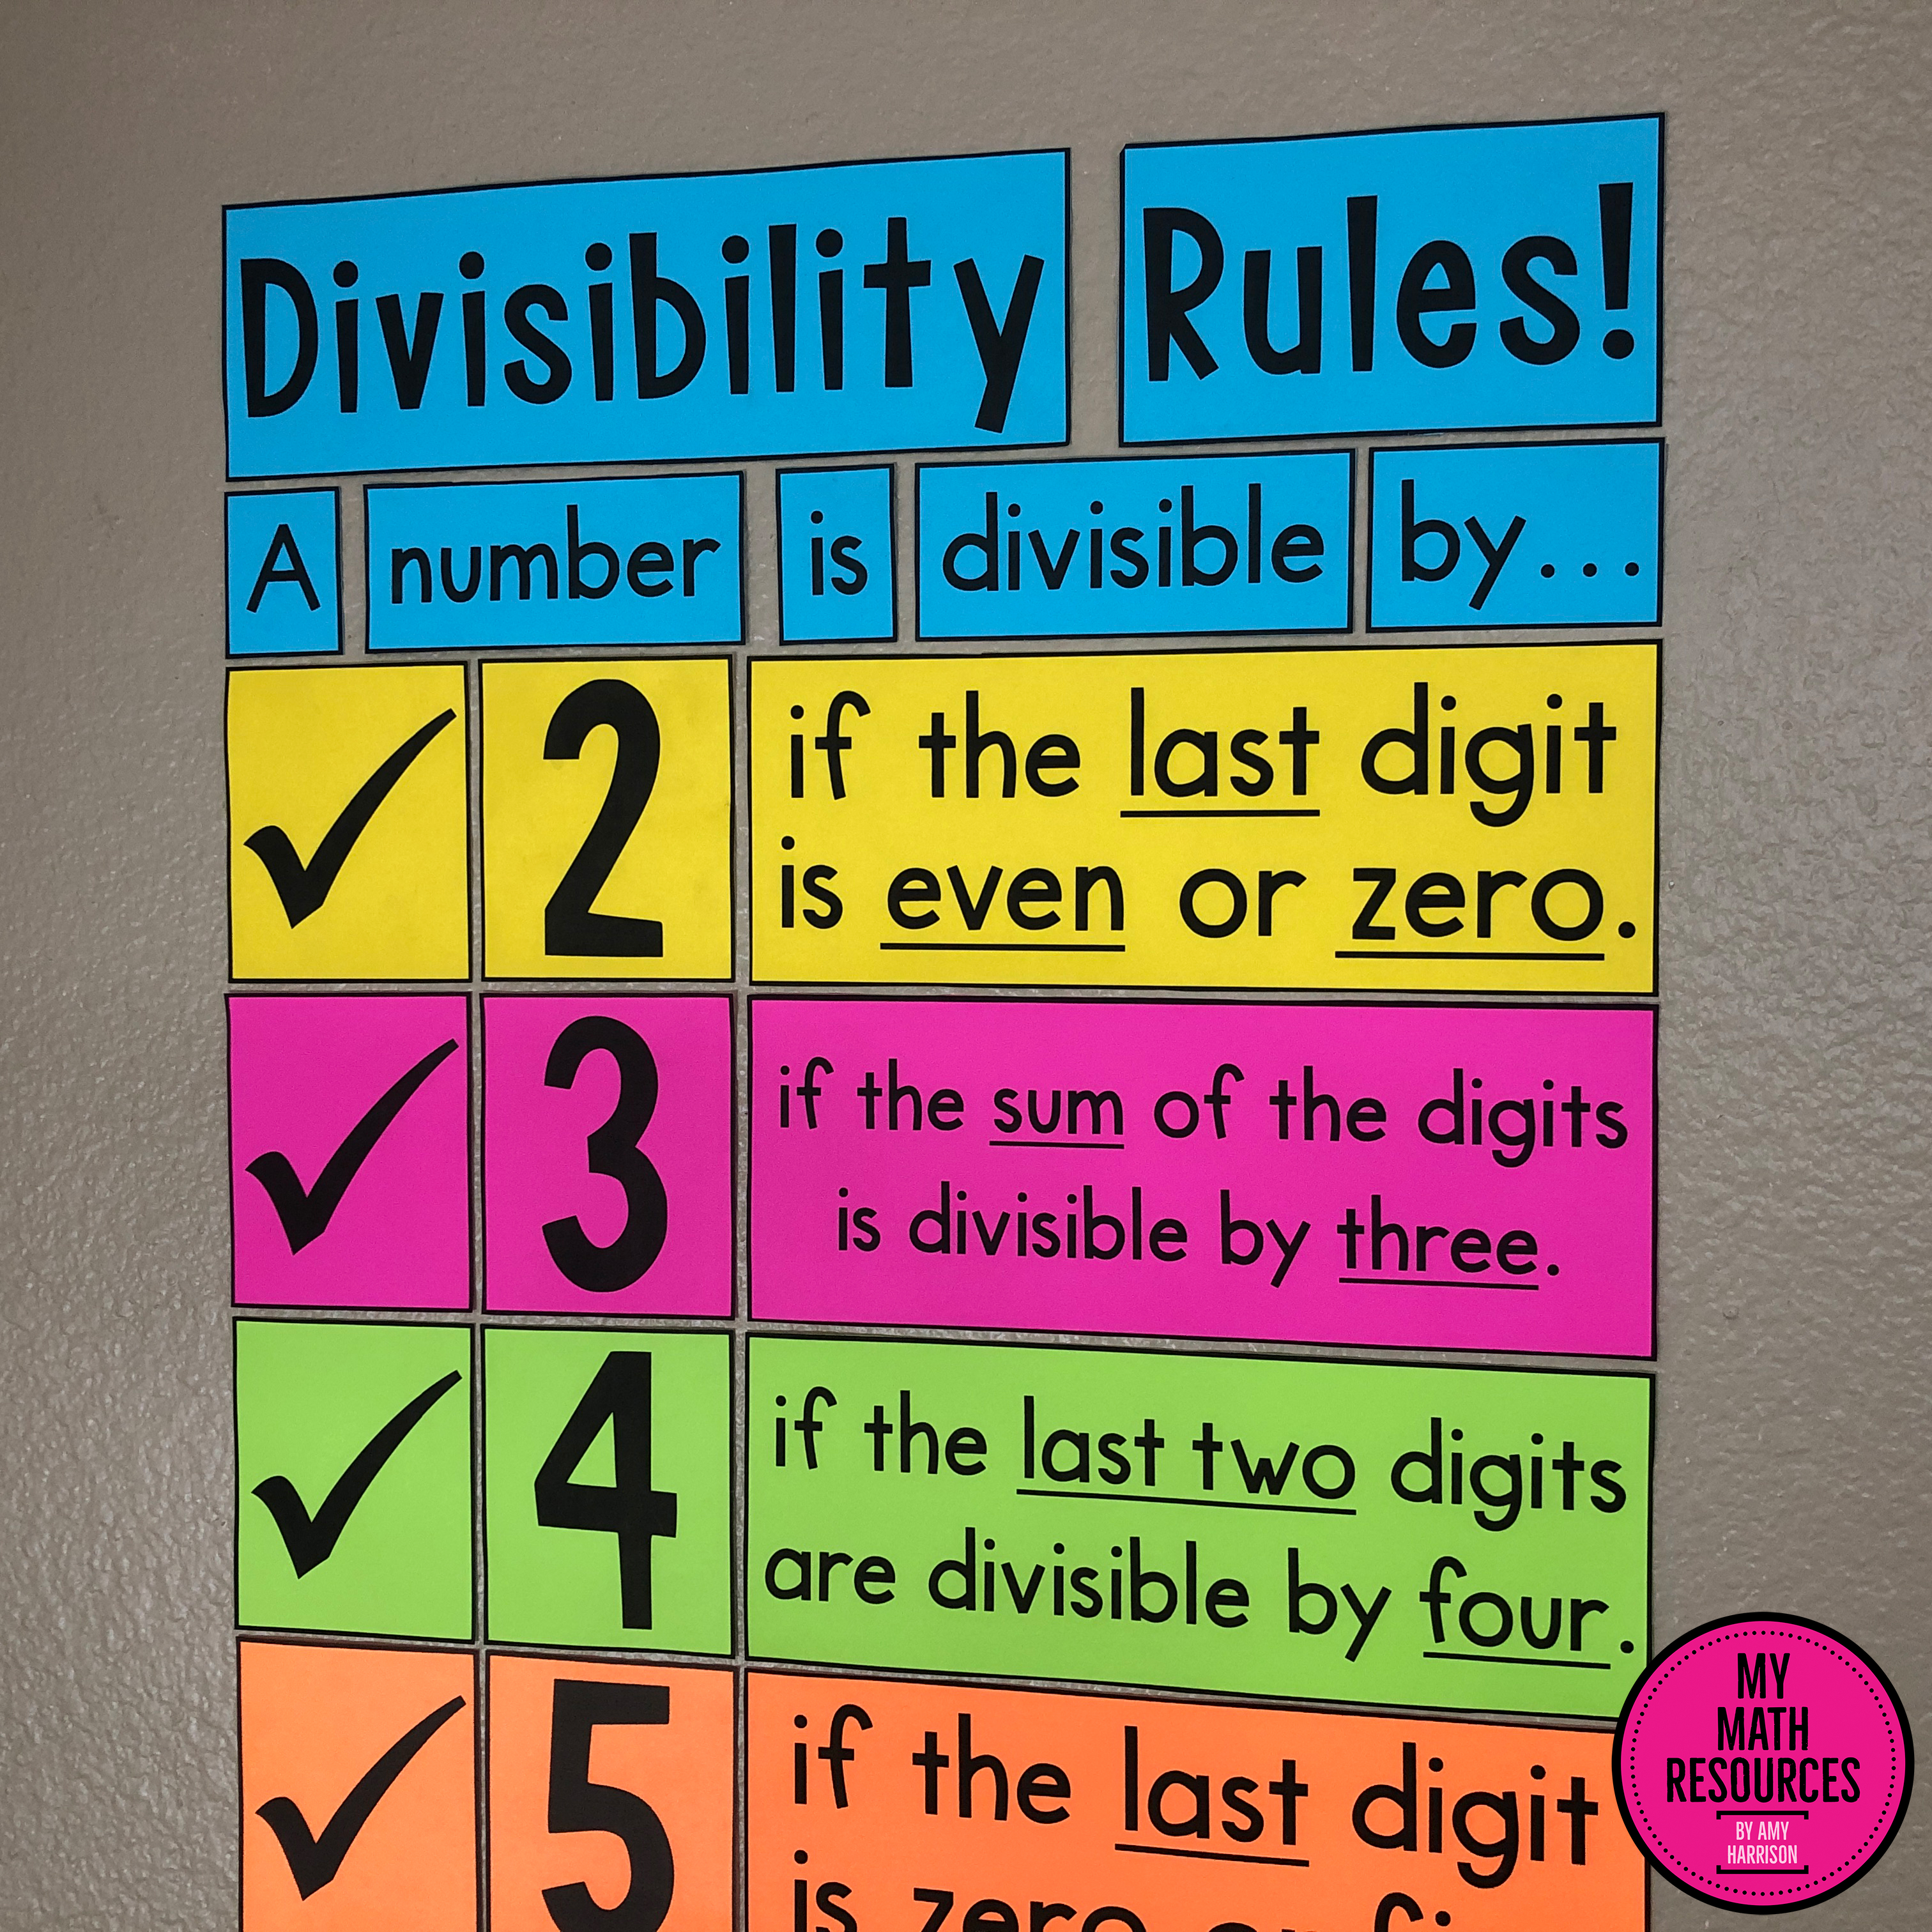 graphic relating to Divisibility Rules Printable known as My Math Products - Divisibility Laws Poster